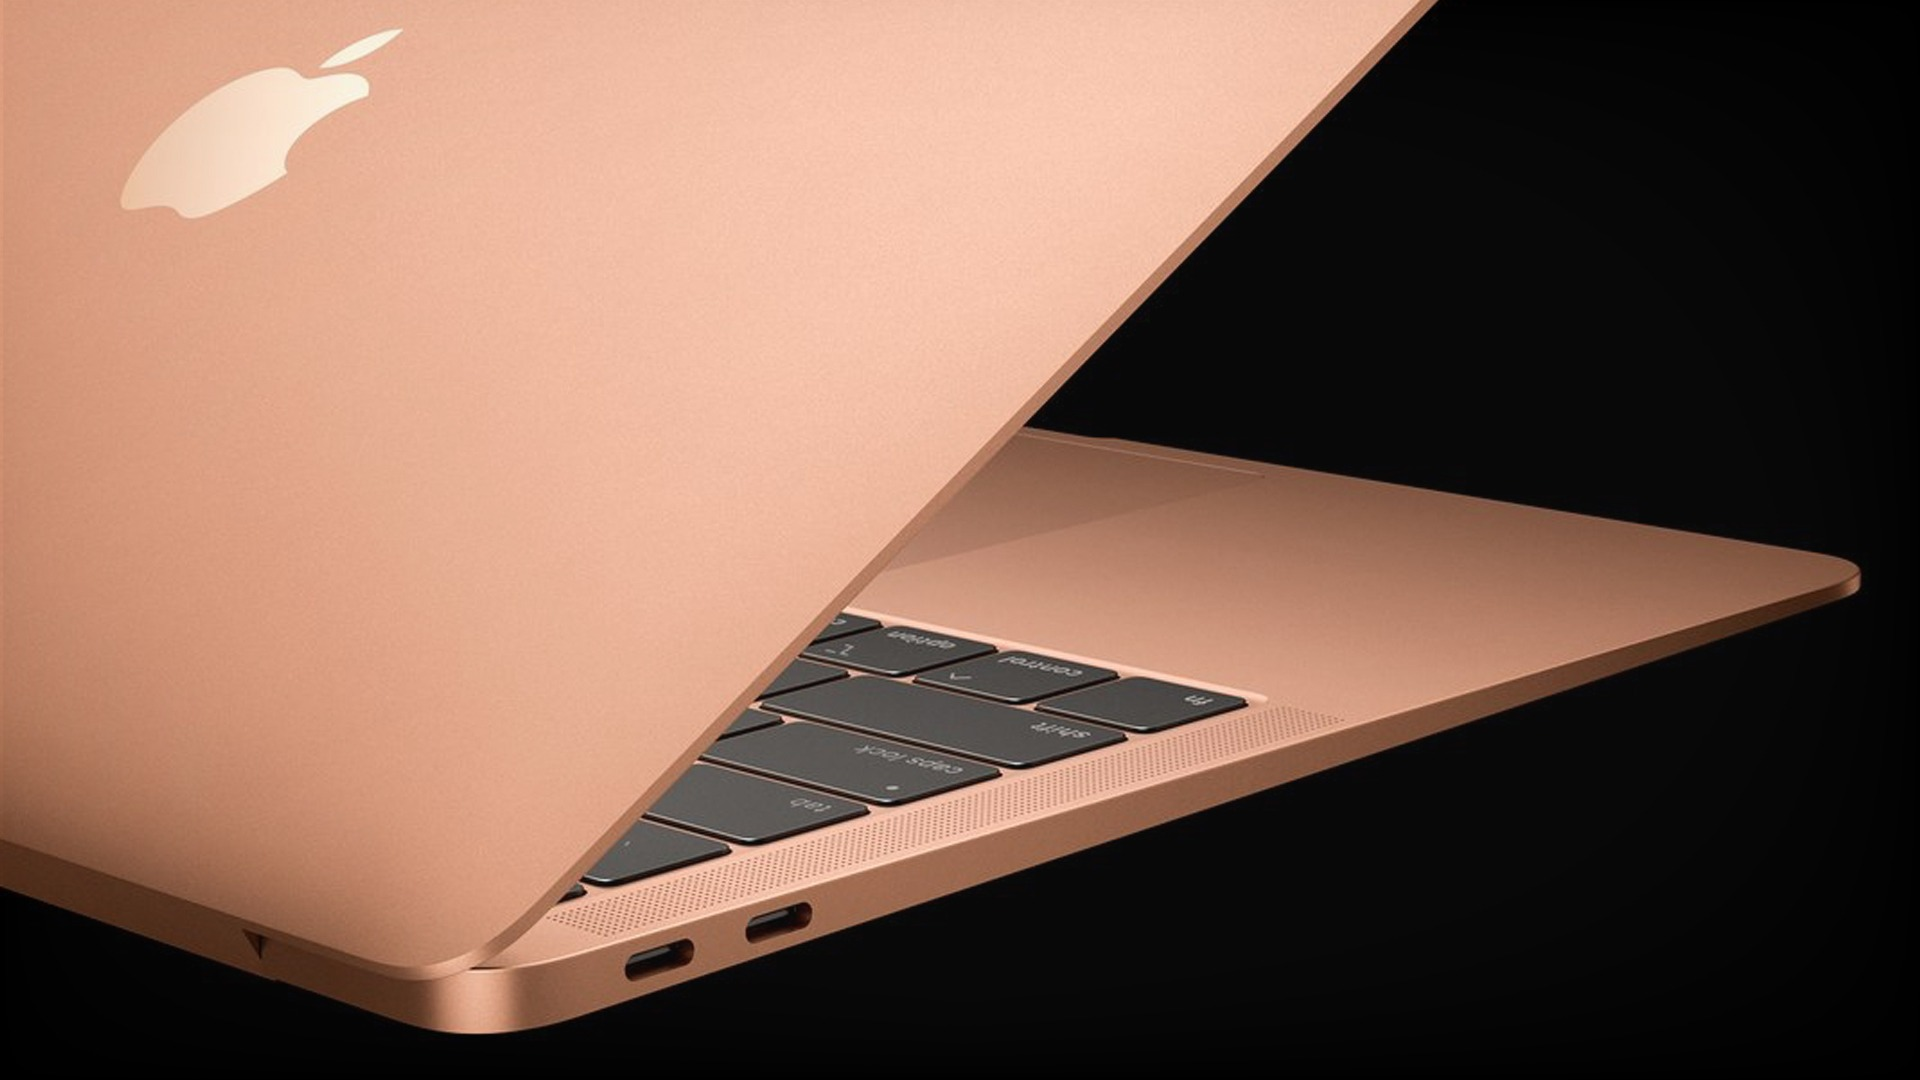 The New 2018 MacBook Air Has A DIY Replaceable Battery (Sort Of)